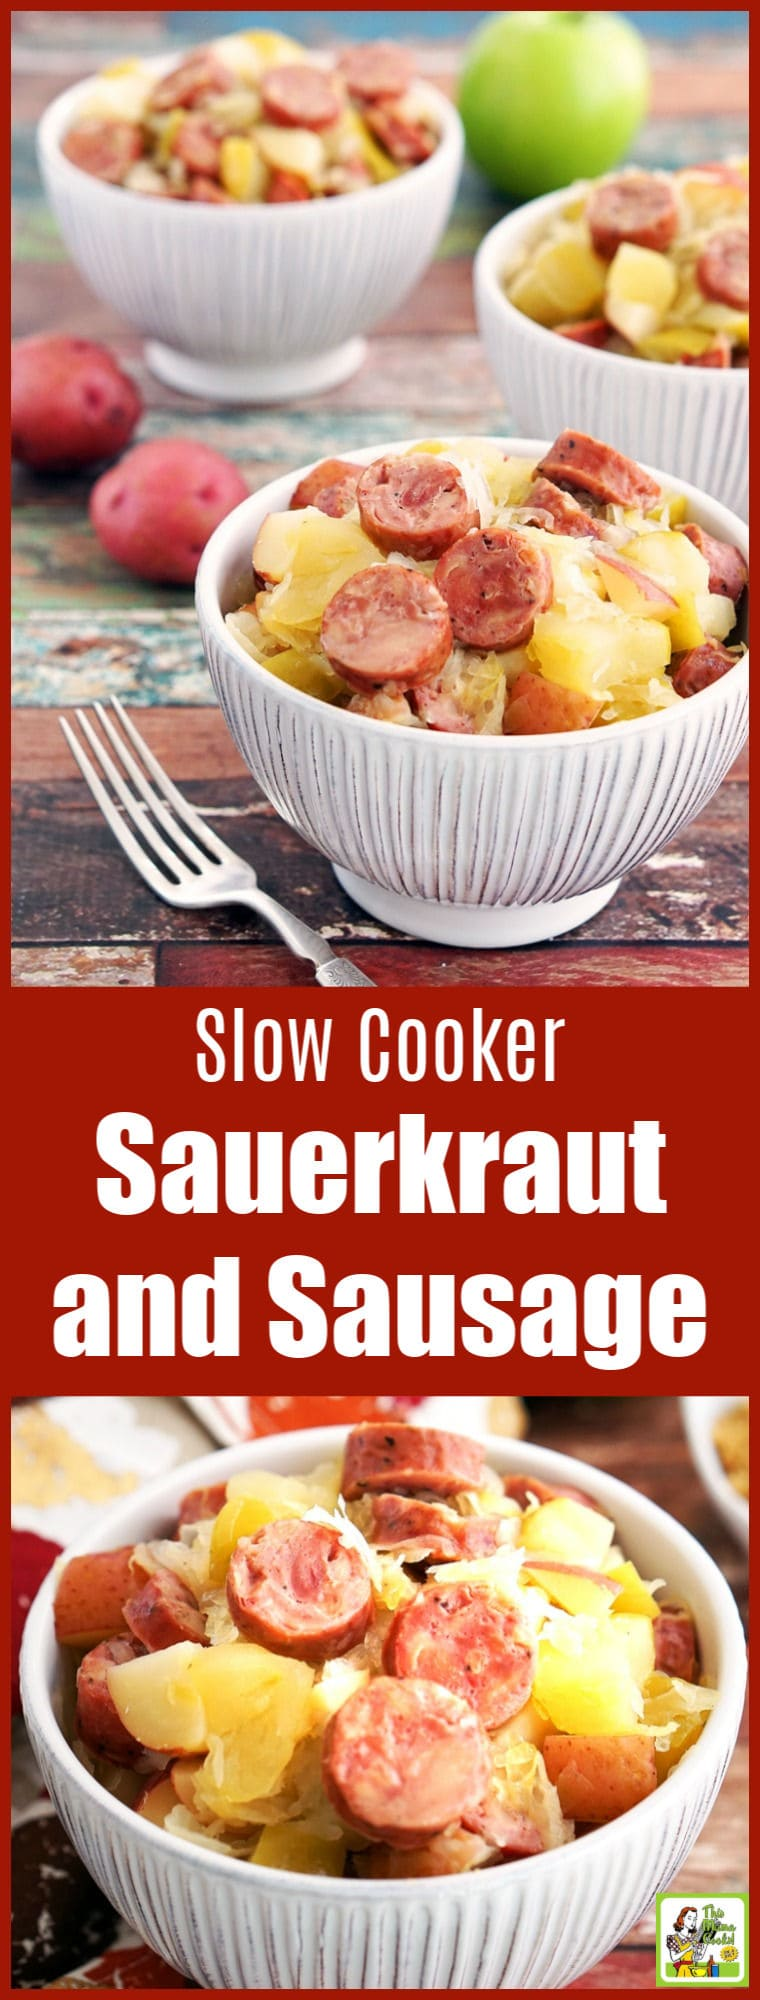 Slow Cooker Sauerkraut and Sausage Recipe with Apples and Potatoes